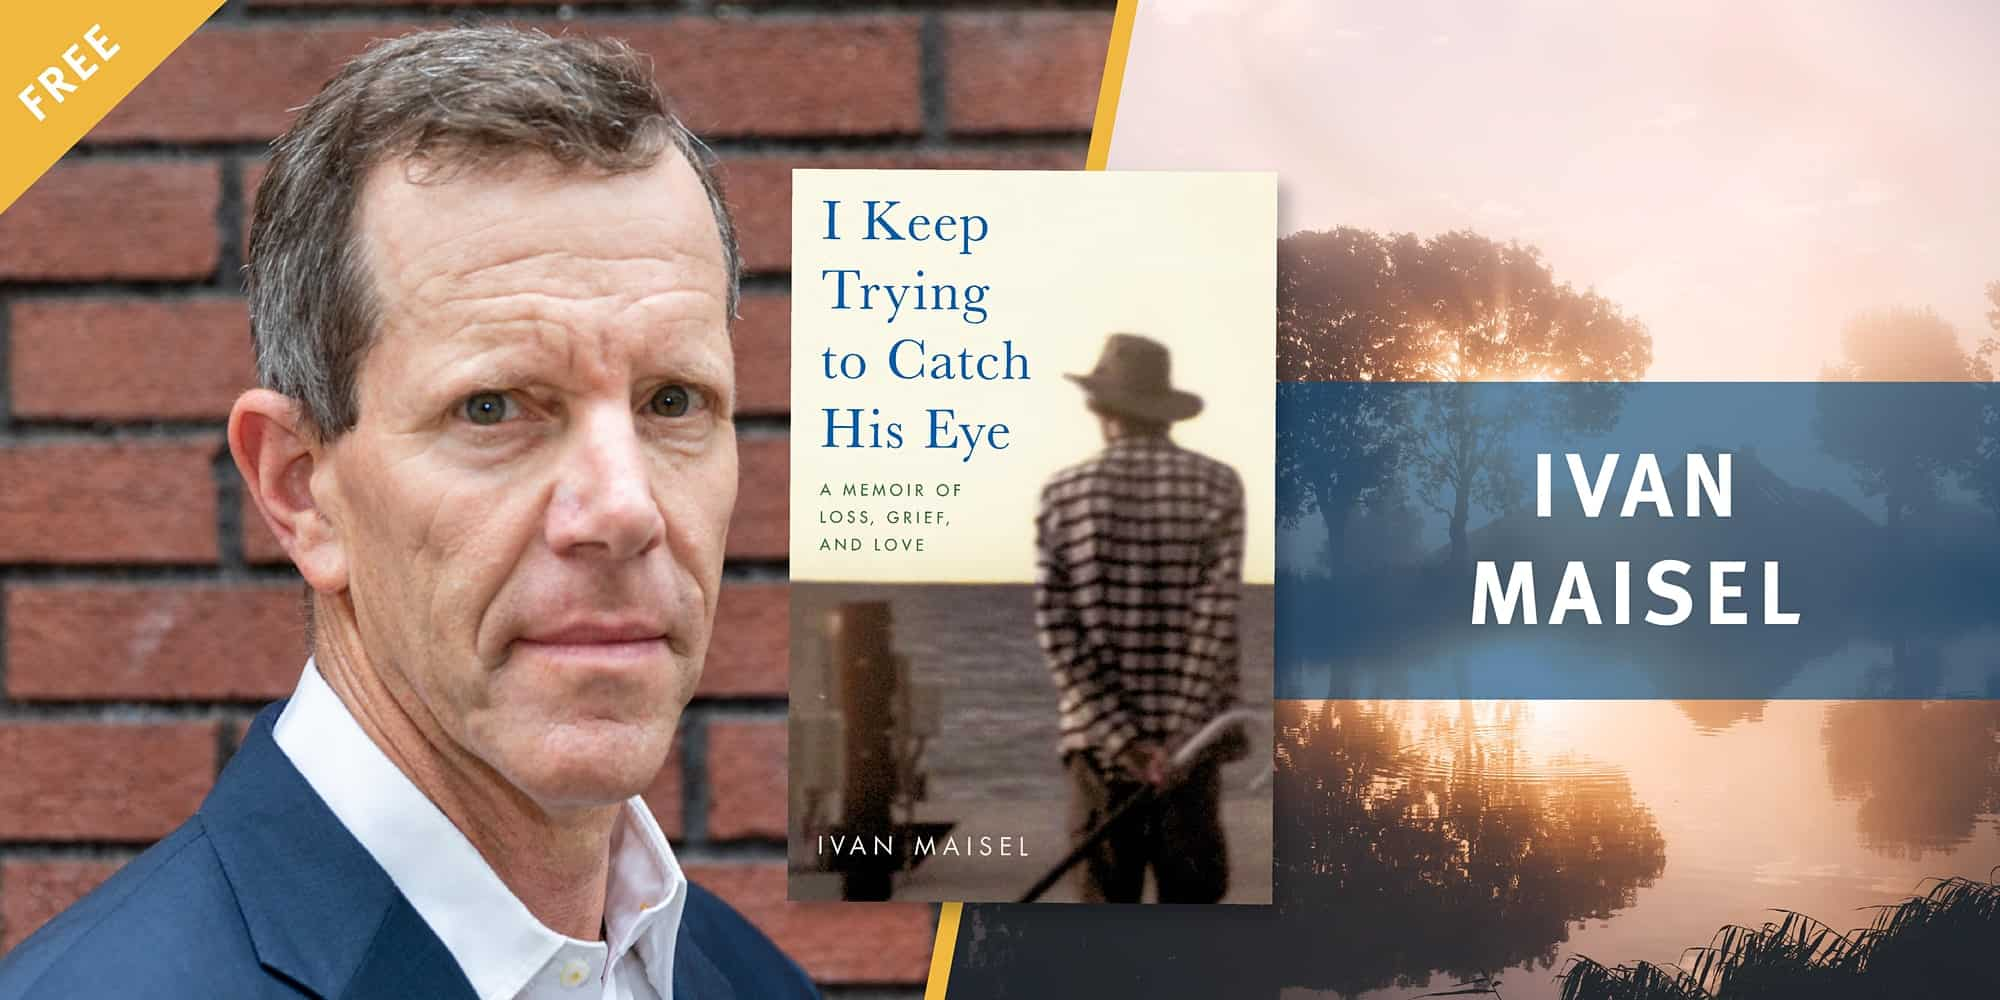 Book Talk: I Keep Trying to Catch His Eye